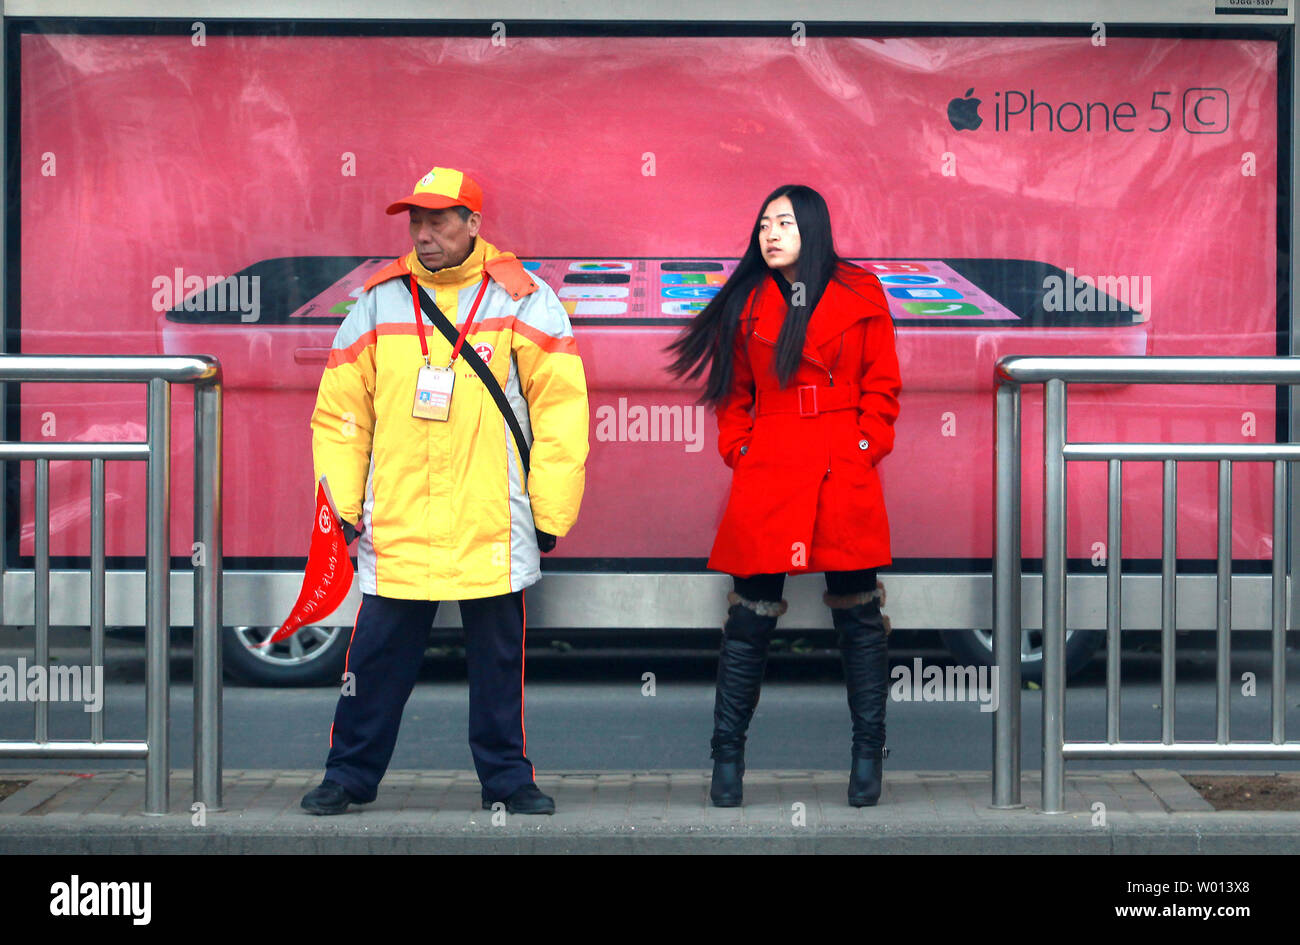 Apple's new iPhone 5C is promoted on the streets of Beijing on December 8, 2013.  China, the world's biggest smartphone market, had 1.2 billion mobile phone users as of the end of October.  Apple and China Mobile have reportedly inked a much-anticipated deal that should make buying an iPhone easier for hundreds of millions of Chinese.   UPI/Stephen Shaver Stock Photo